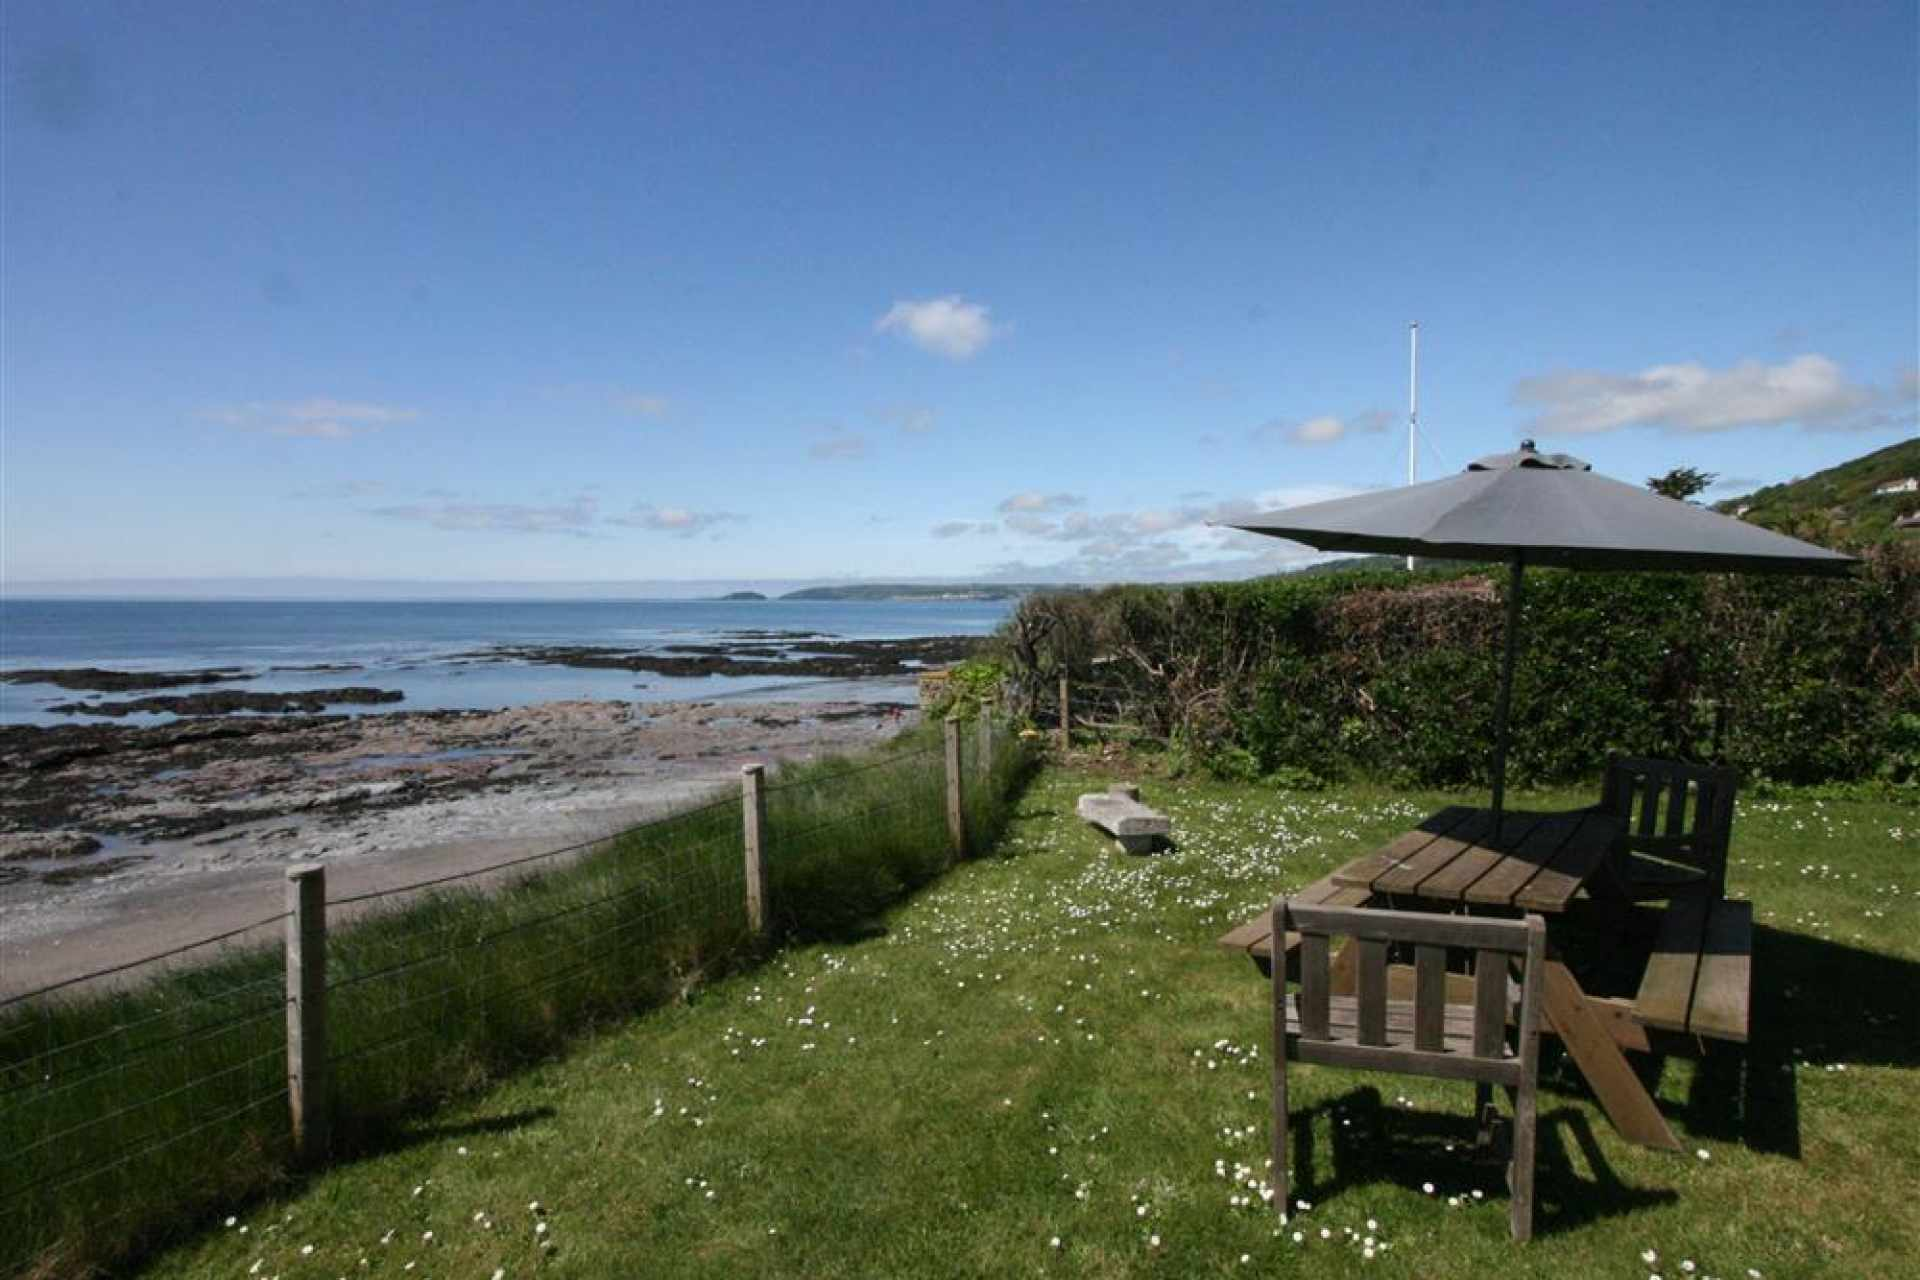 Old Coastguard garden overlooking beach